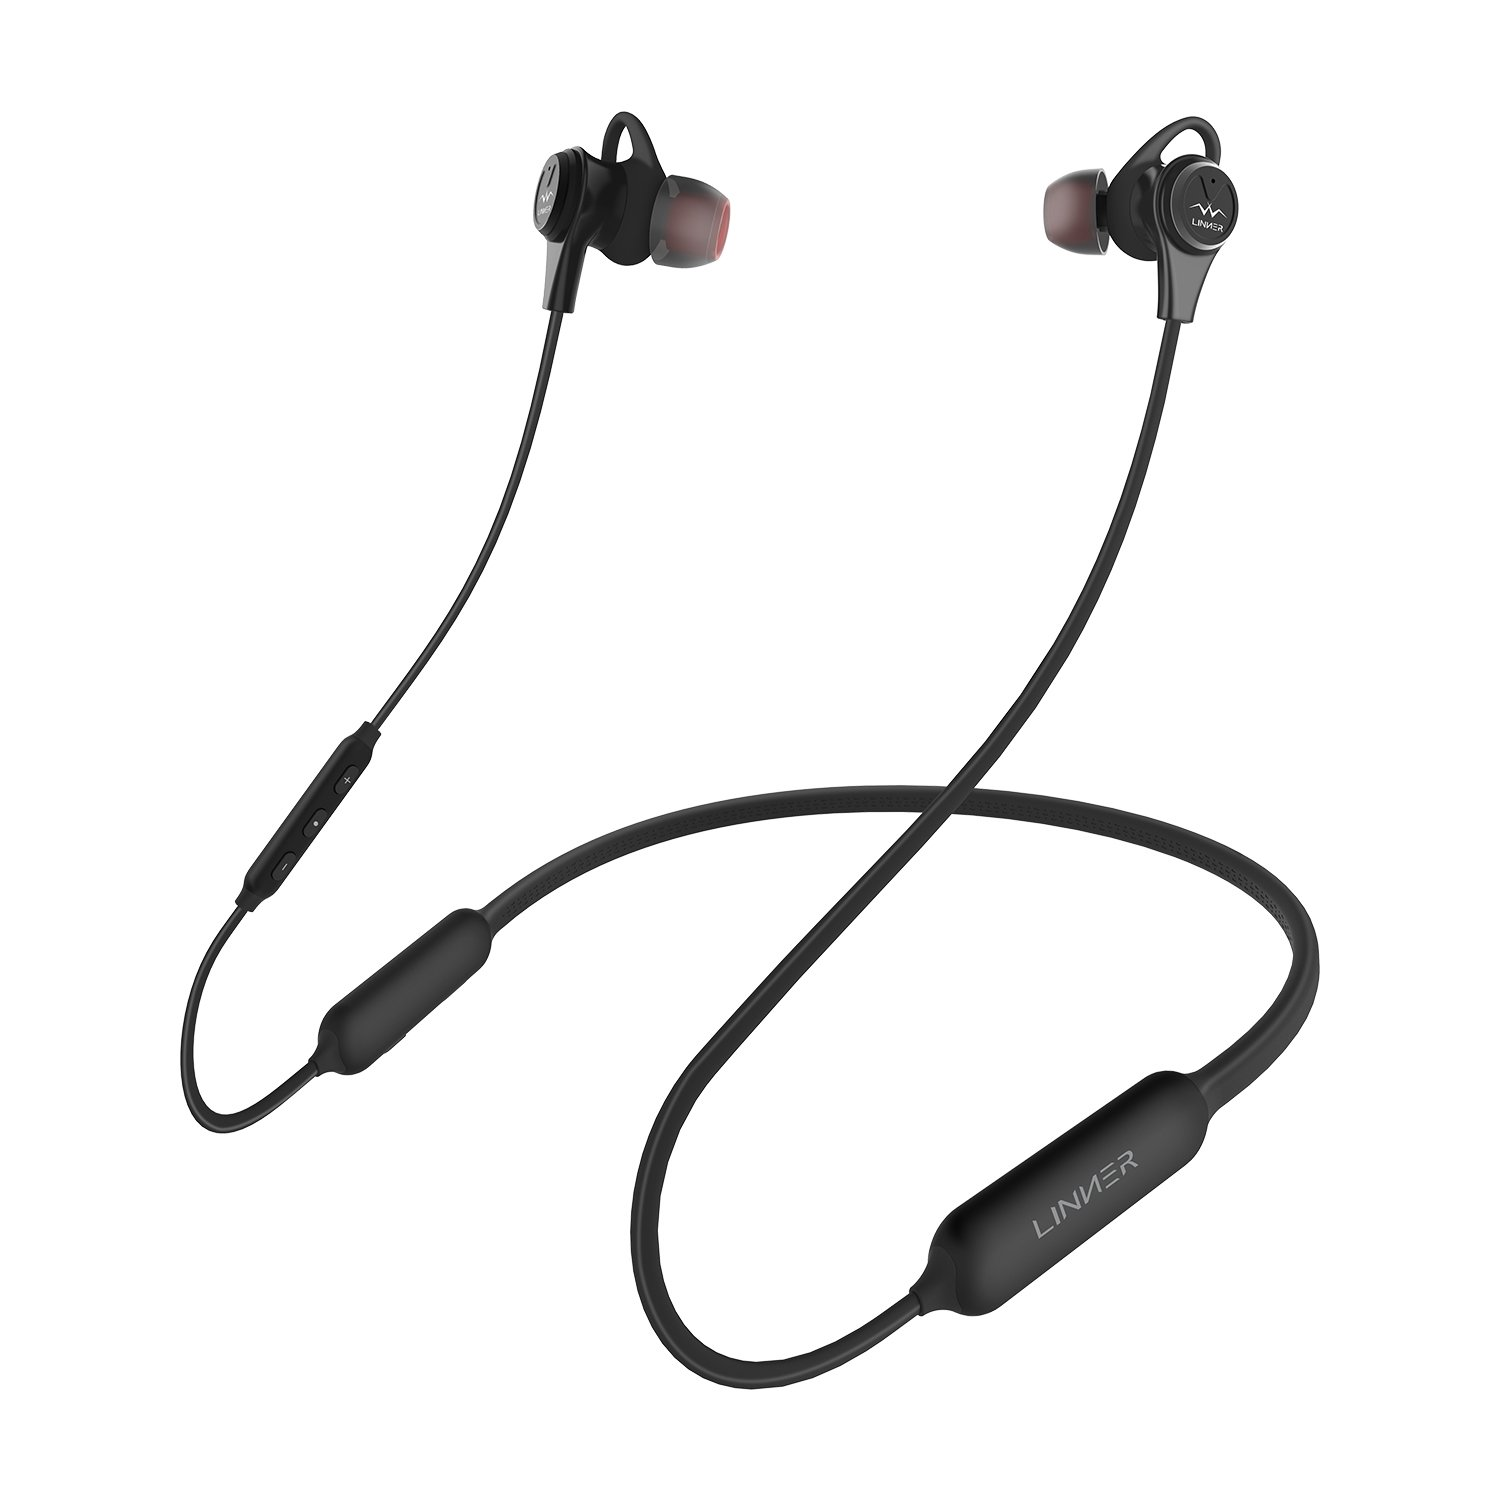 Wiring Diagram Building Noise Canceling Headphones Microphone Amazoncom Active Cancelling Wireless Linner Nc50 Bluetooth 41 Sports Earphones